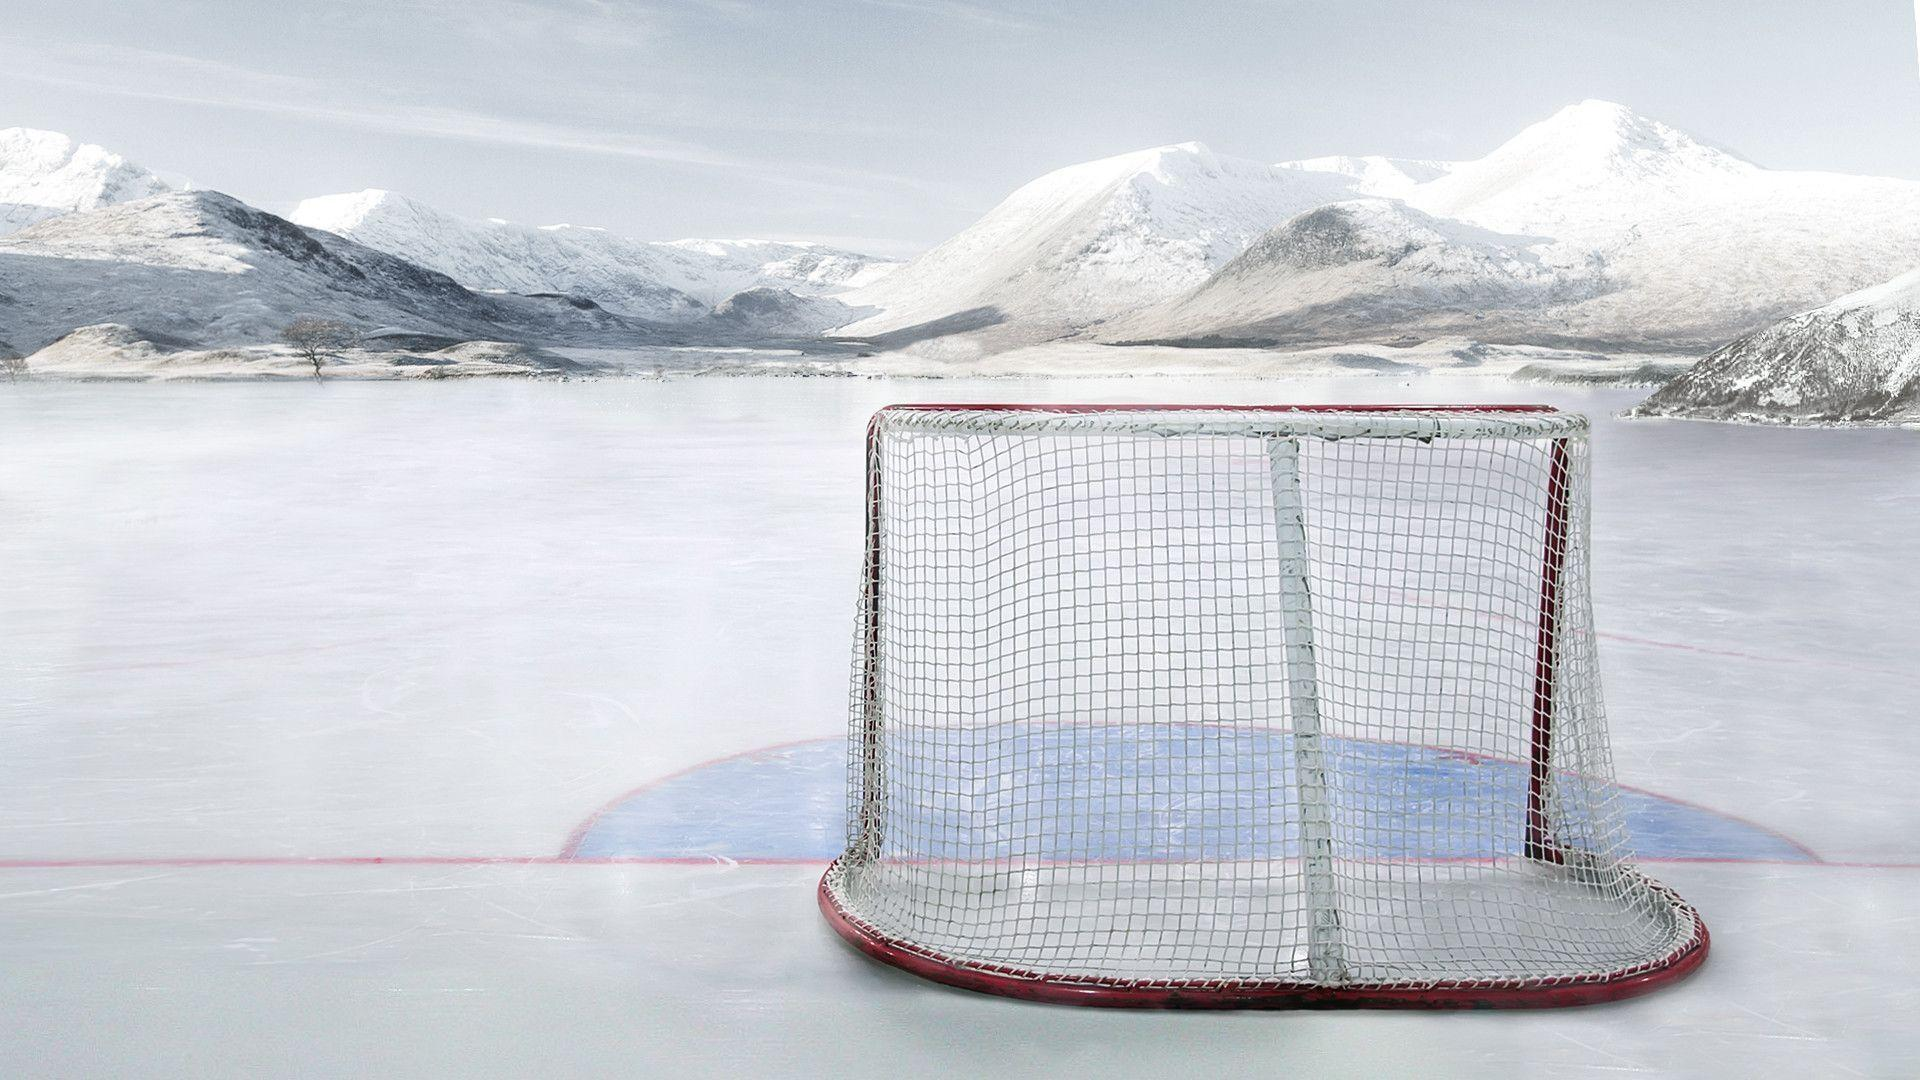 Cool Hockey Backgrounds 1920x1080